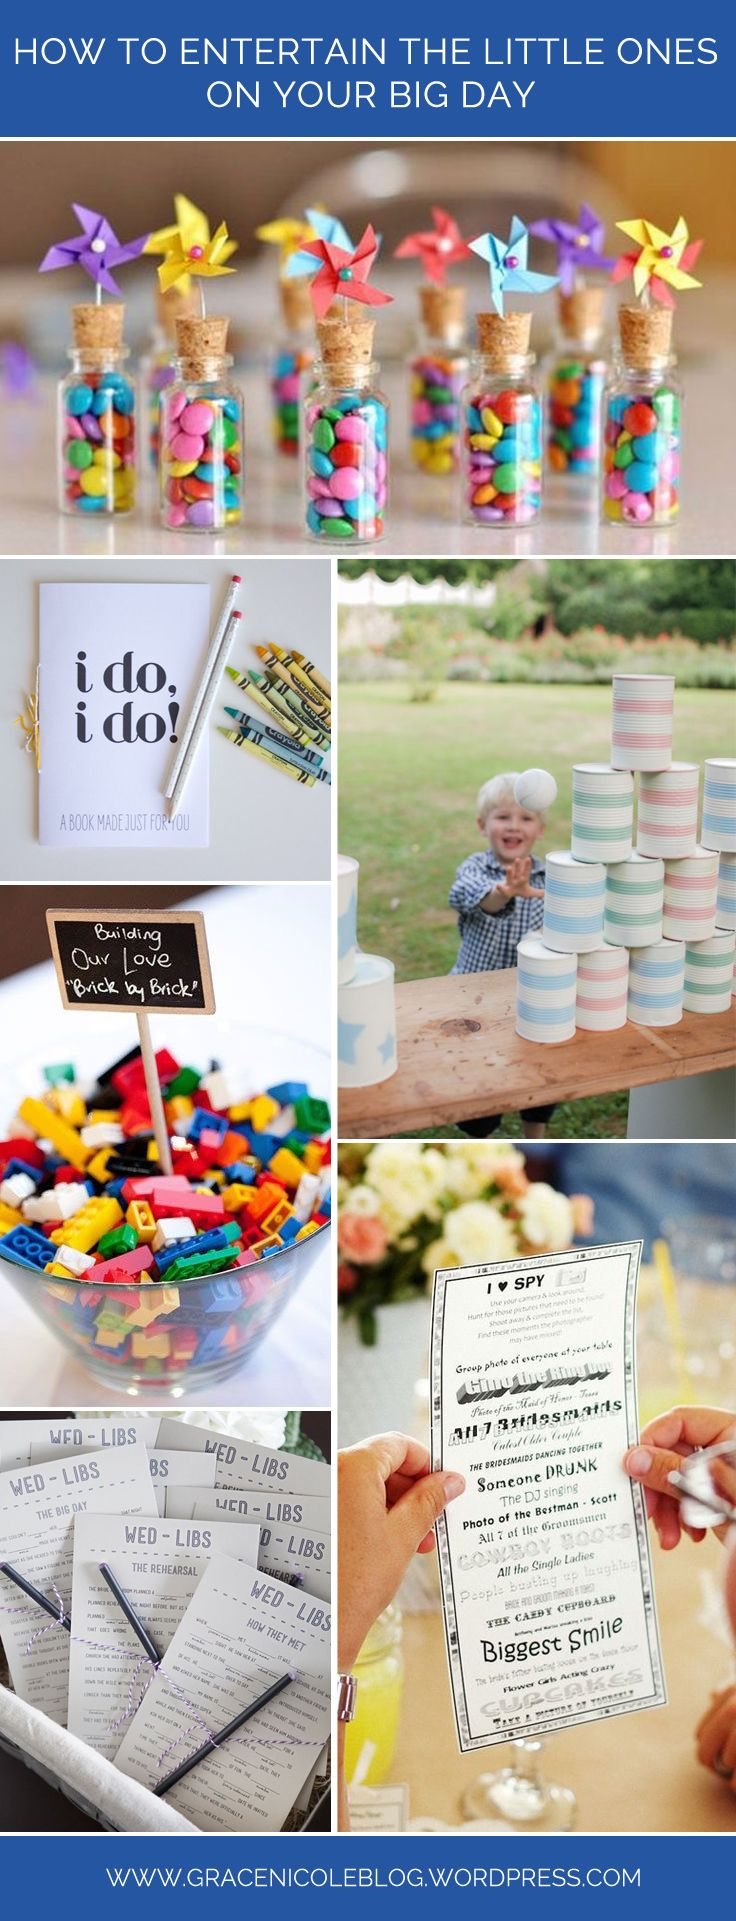 How to Entertain the little ones on your big day. A guide to keeping children happy on your wedding day. Activities, games, booklets and sweets to keep the kids smiling all day long!   Check out the blog for more wedding inspiration at www.gracenicoleblog.wordpress.com